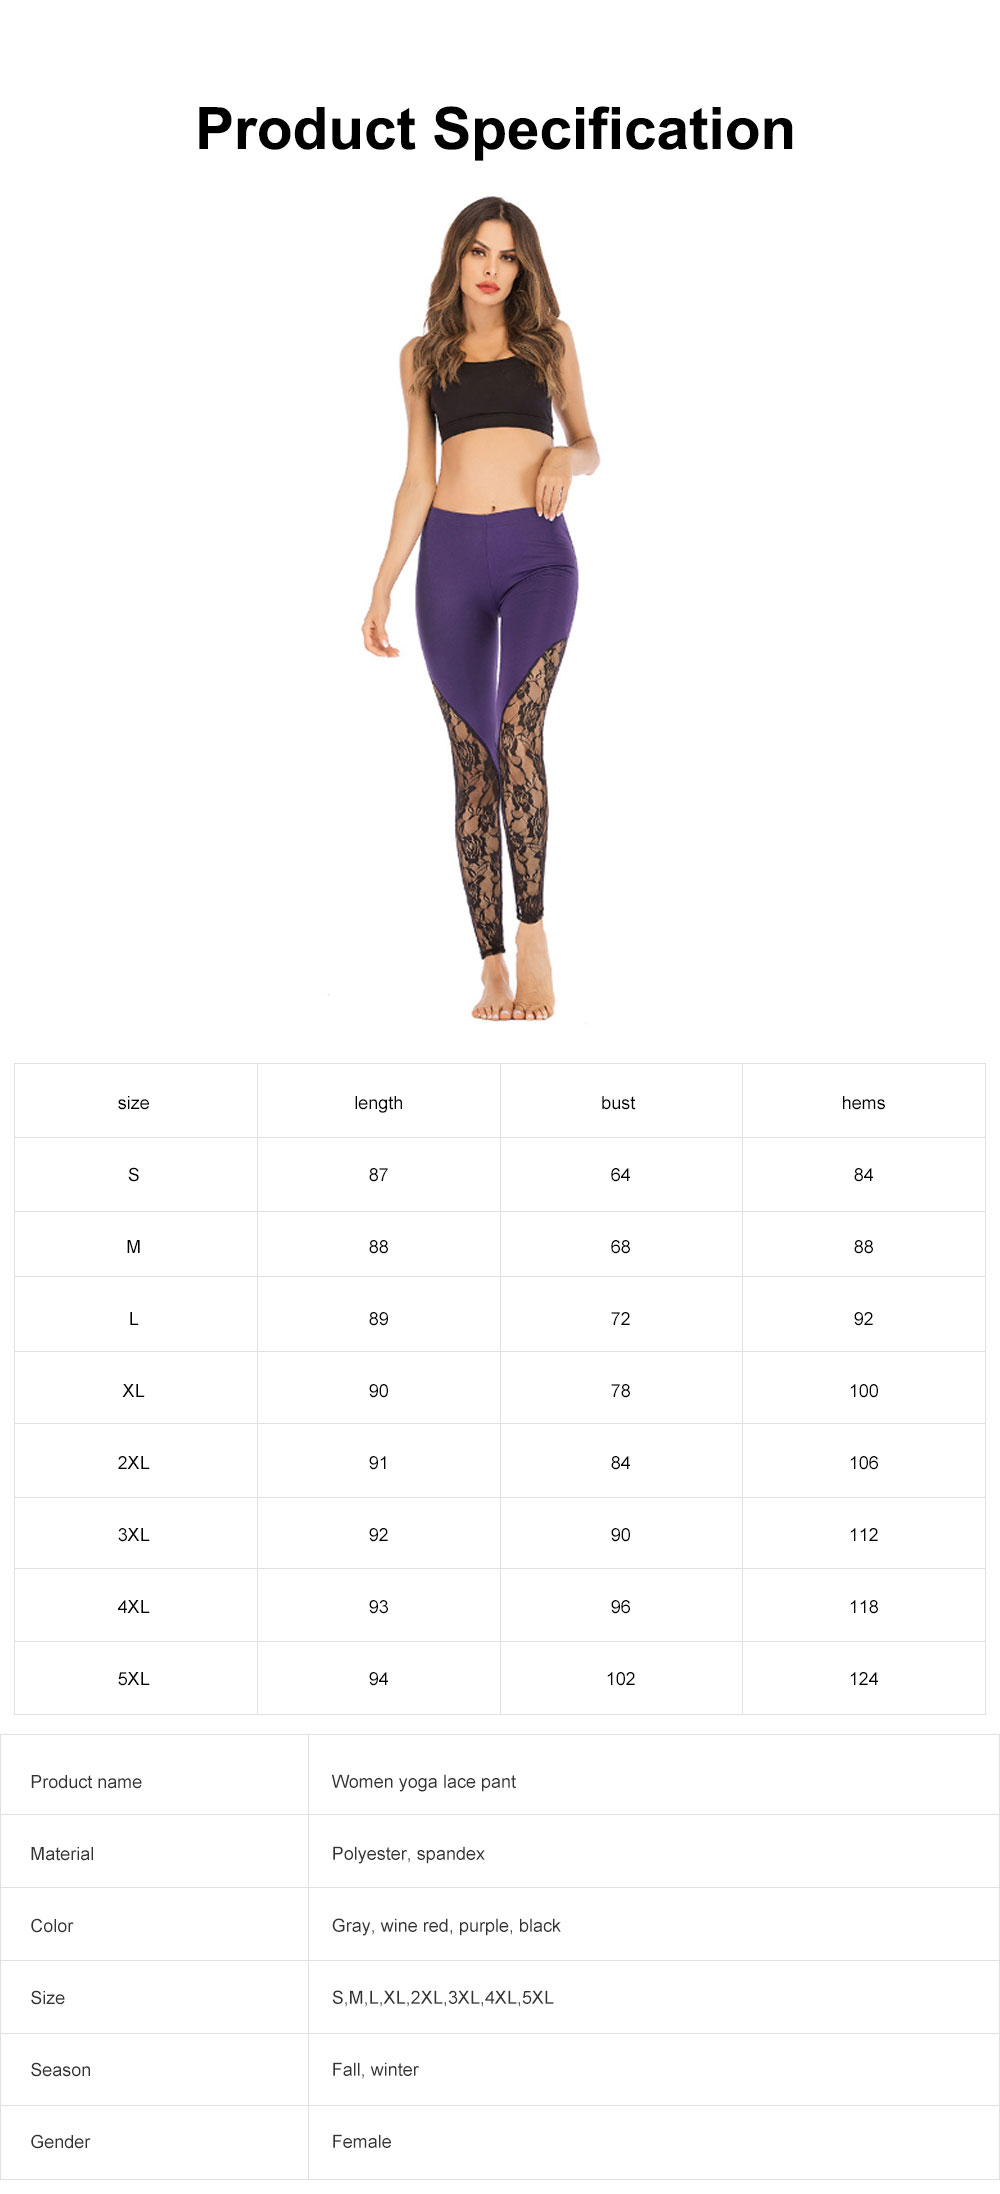 Trendy Lace Yoga Pant Fast-Dry Soft Polyester Trousers Elastic Waistband Breathable Sport Wear Pants for Women Lady 4 Colors 7